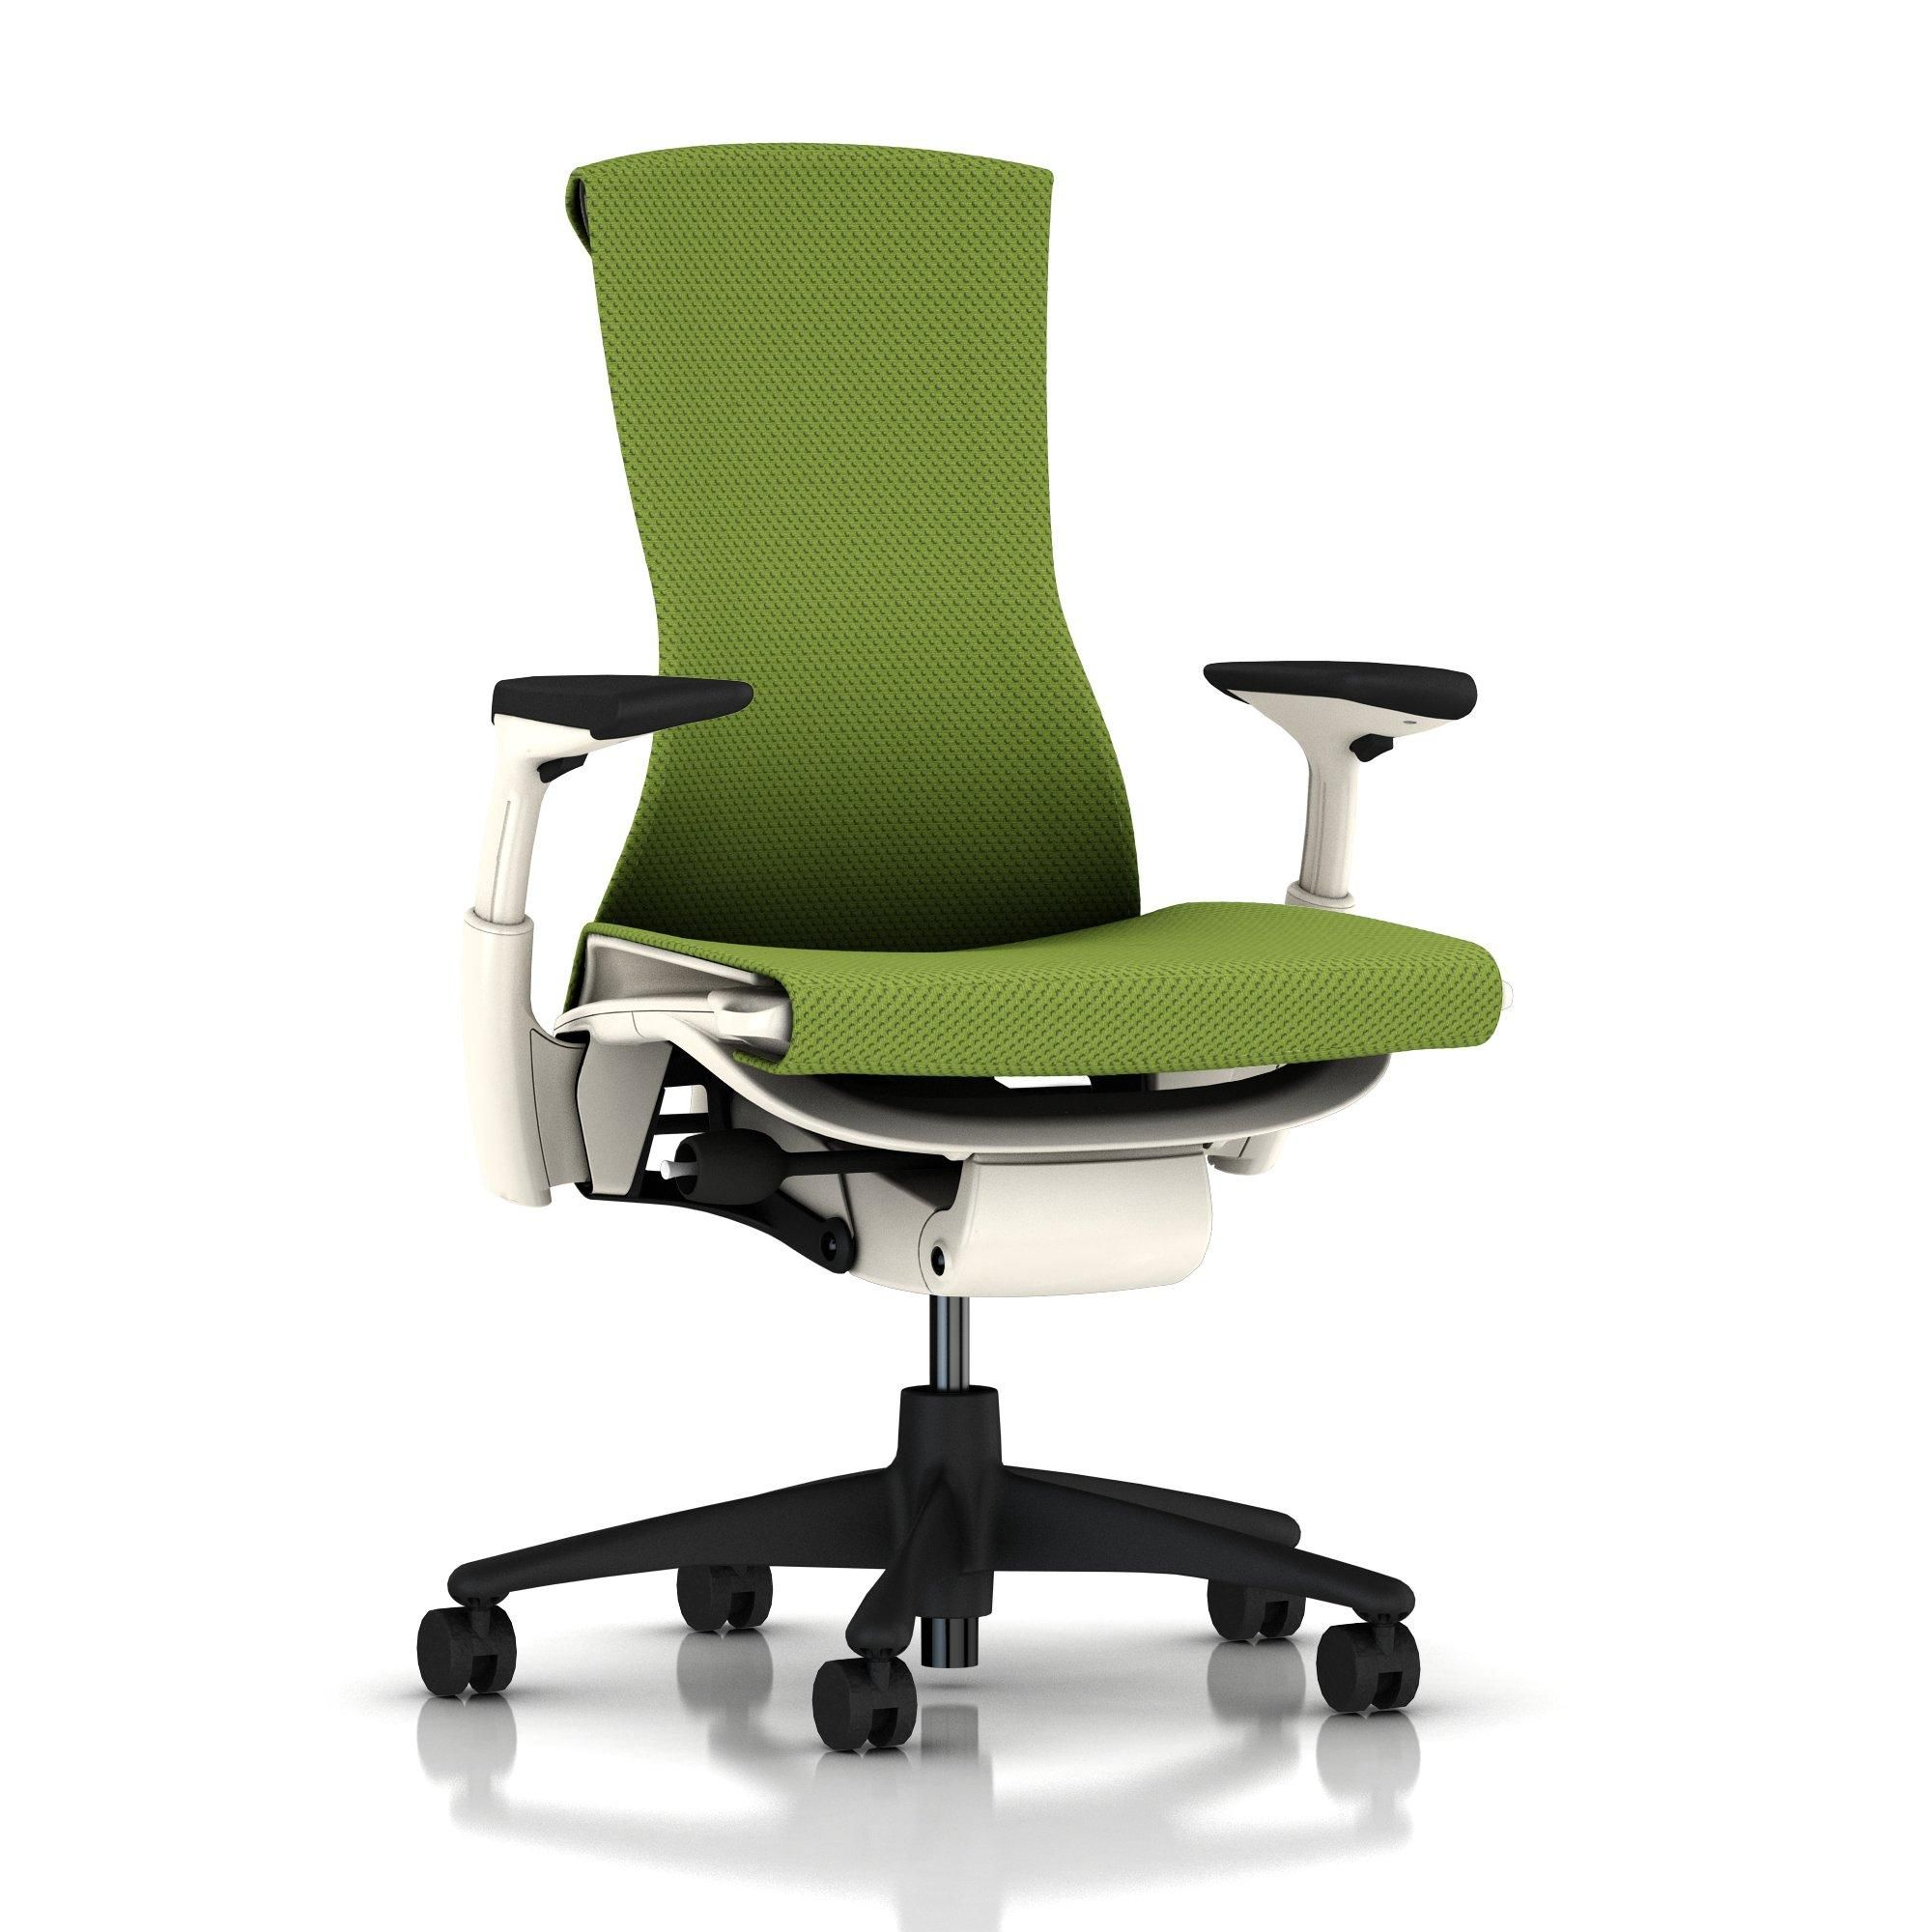 Embody office chair by Bill Stumpf and Jeff Weber